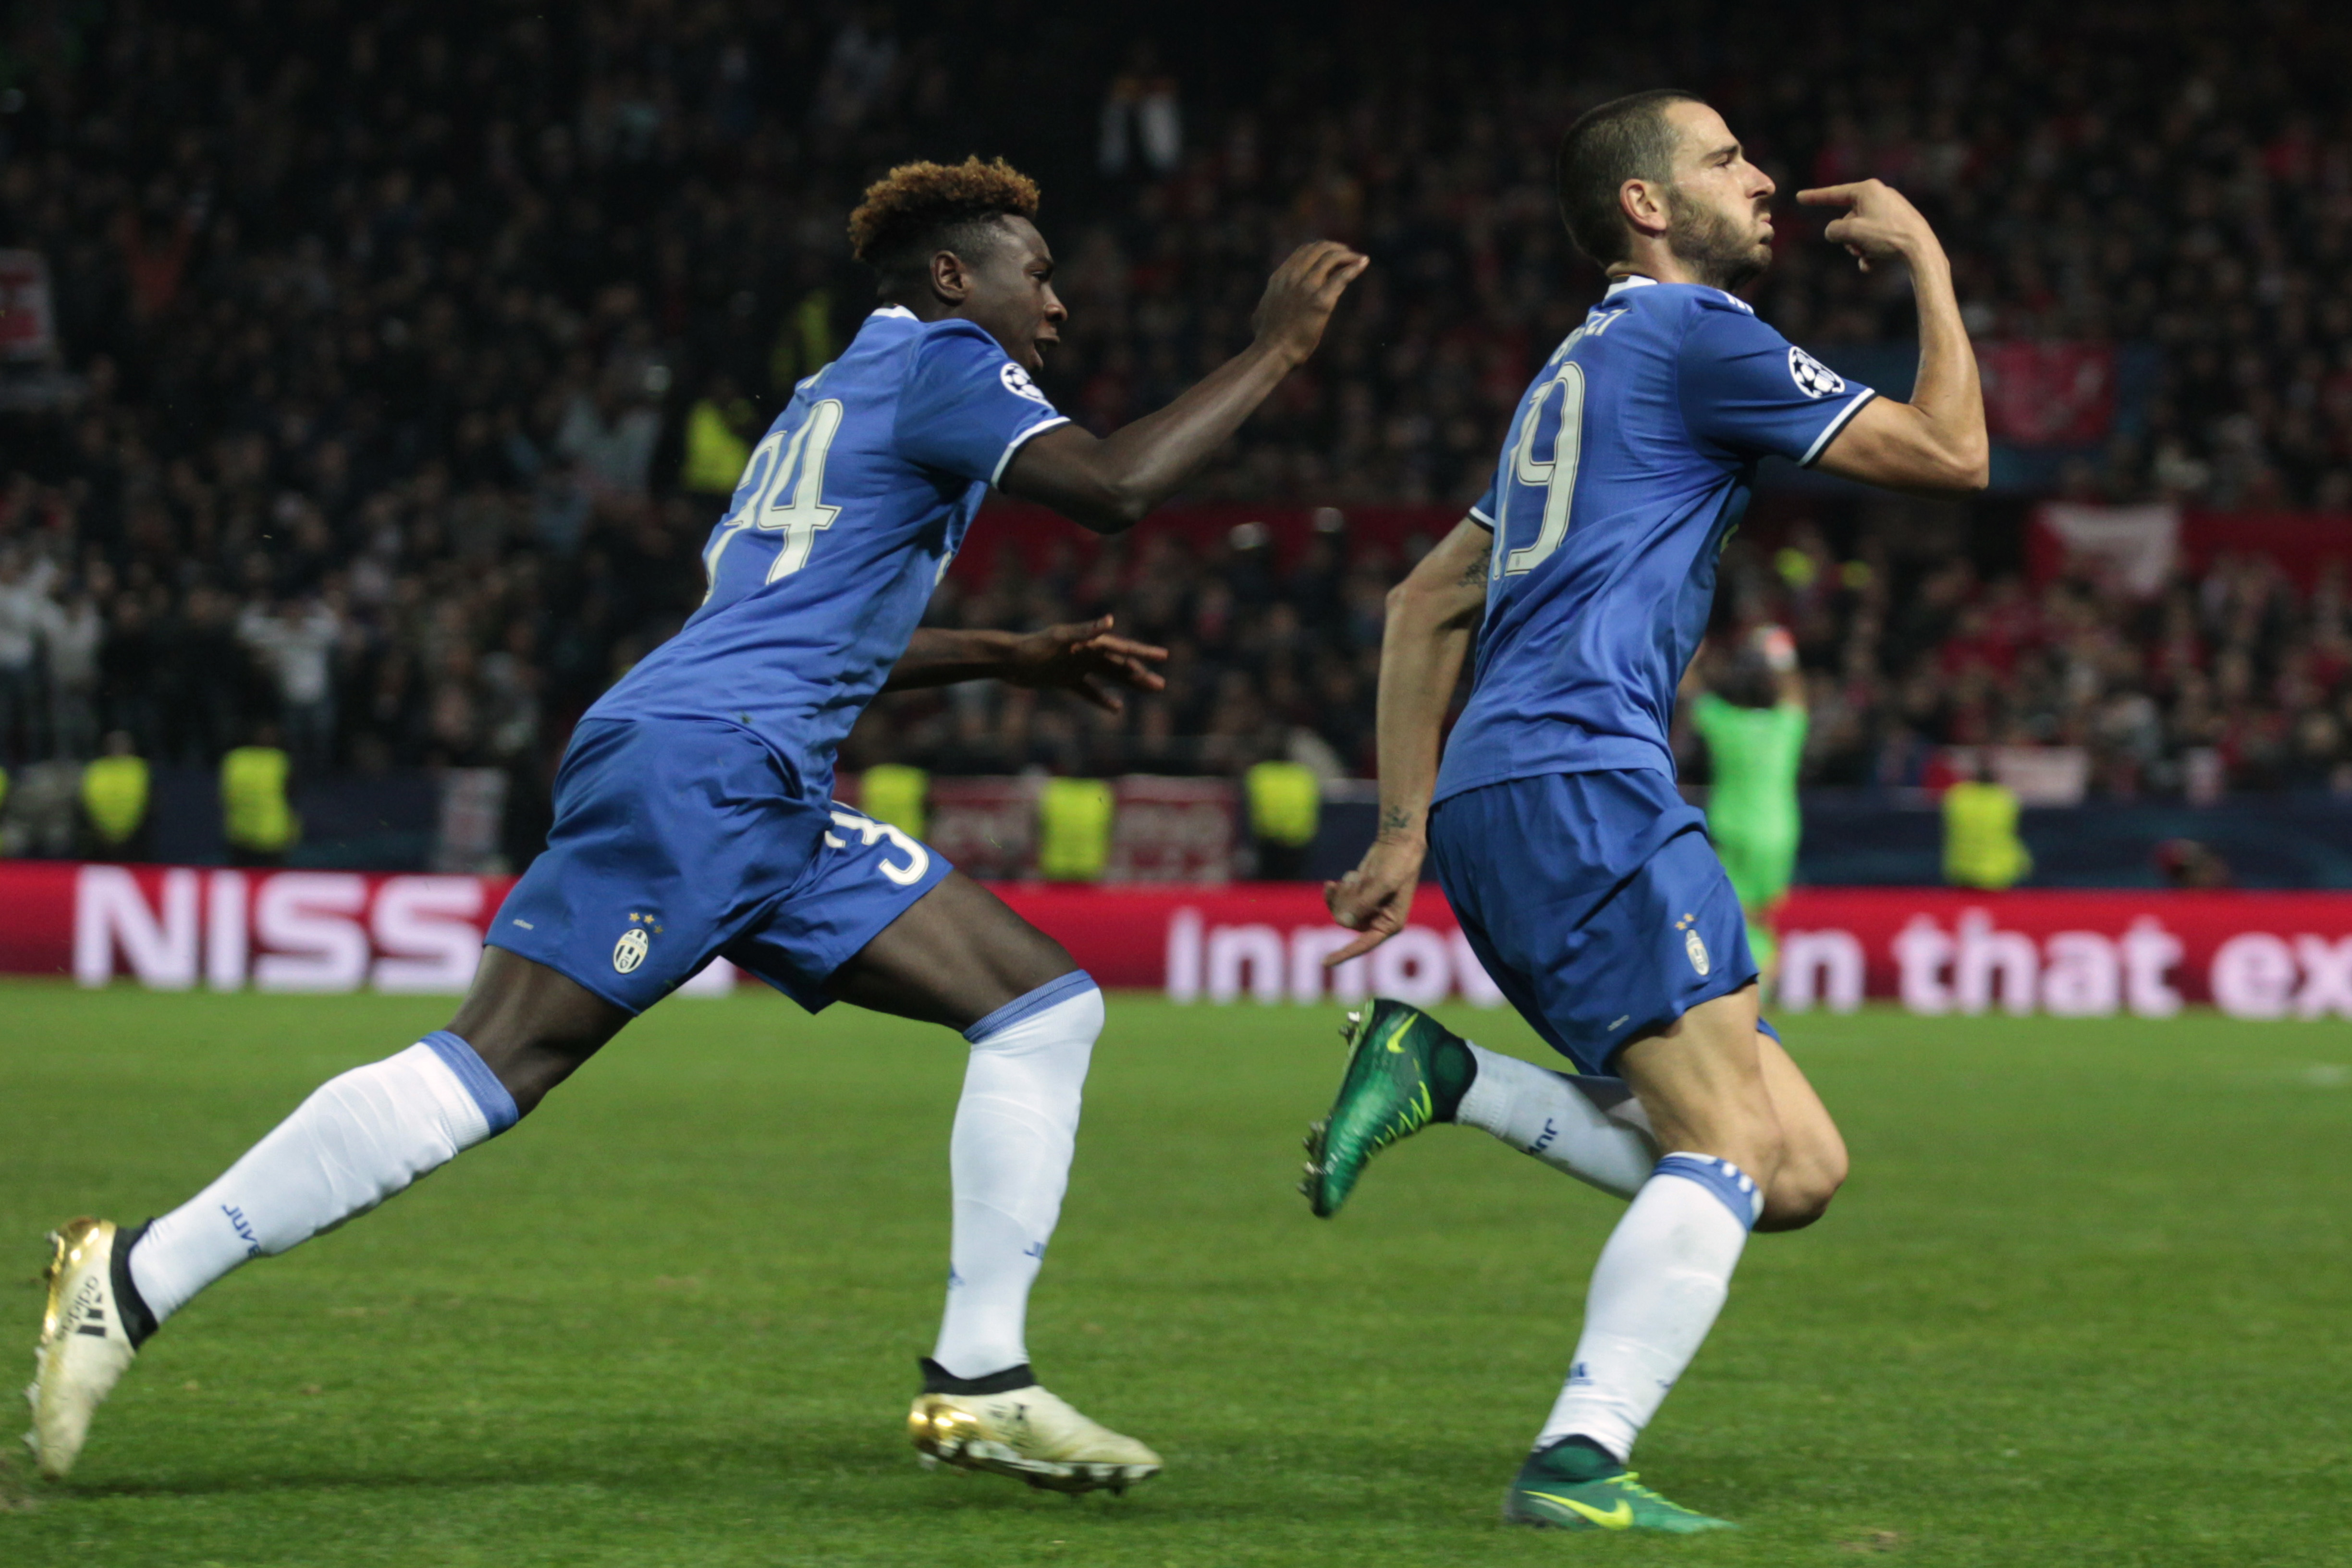 Juve Wonderkid Moise Kean S Brother Tells Who Players Idol Is Sportbible